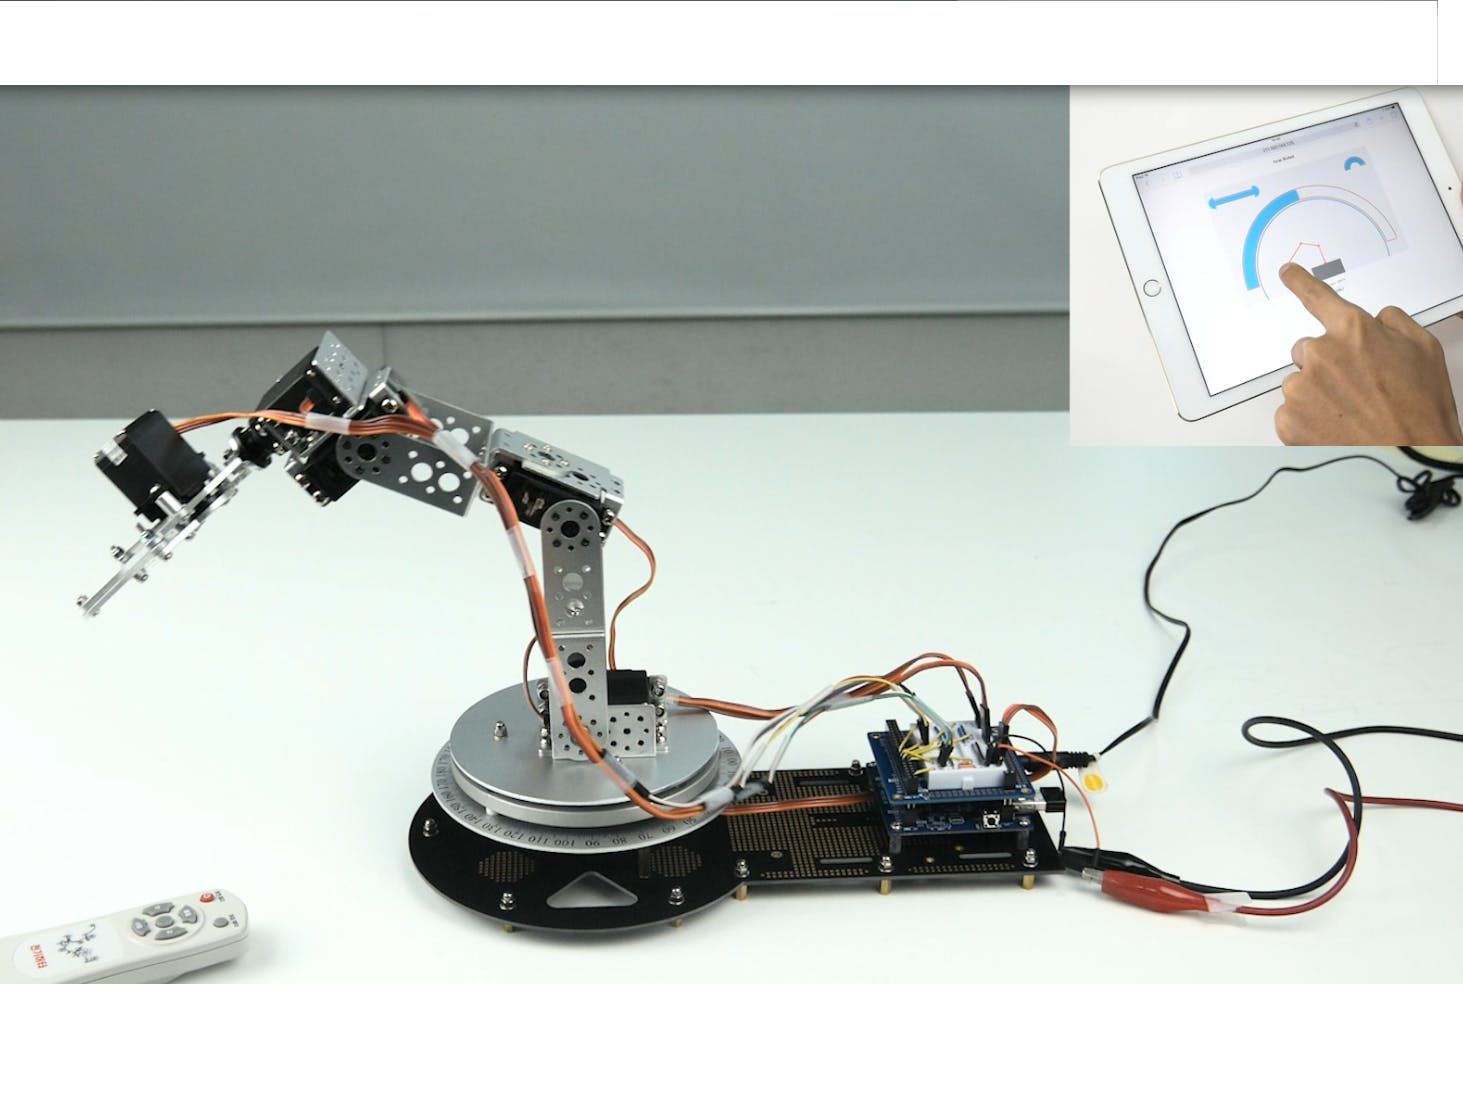 Remotely Controlling Arm Robot via Web